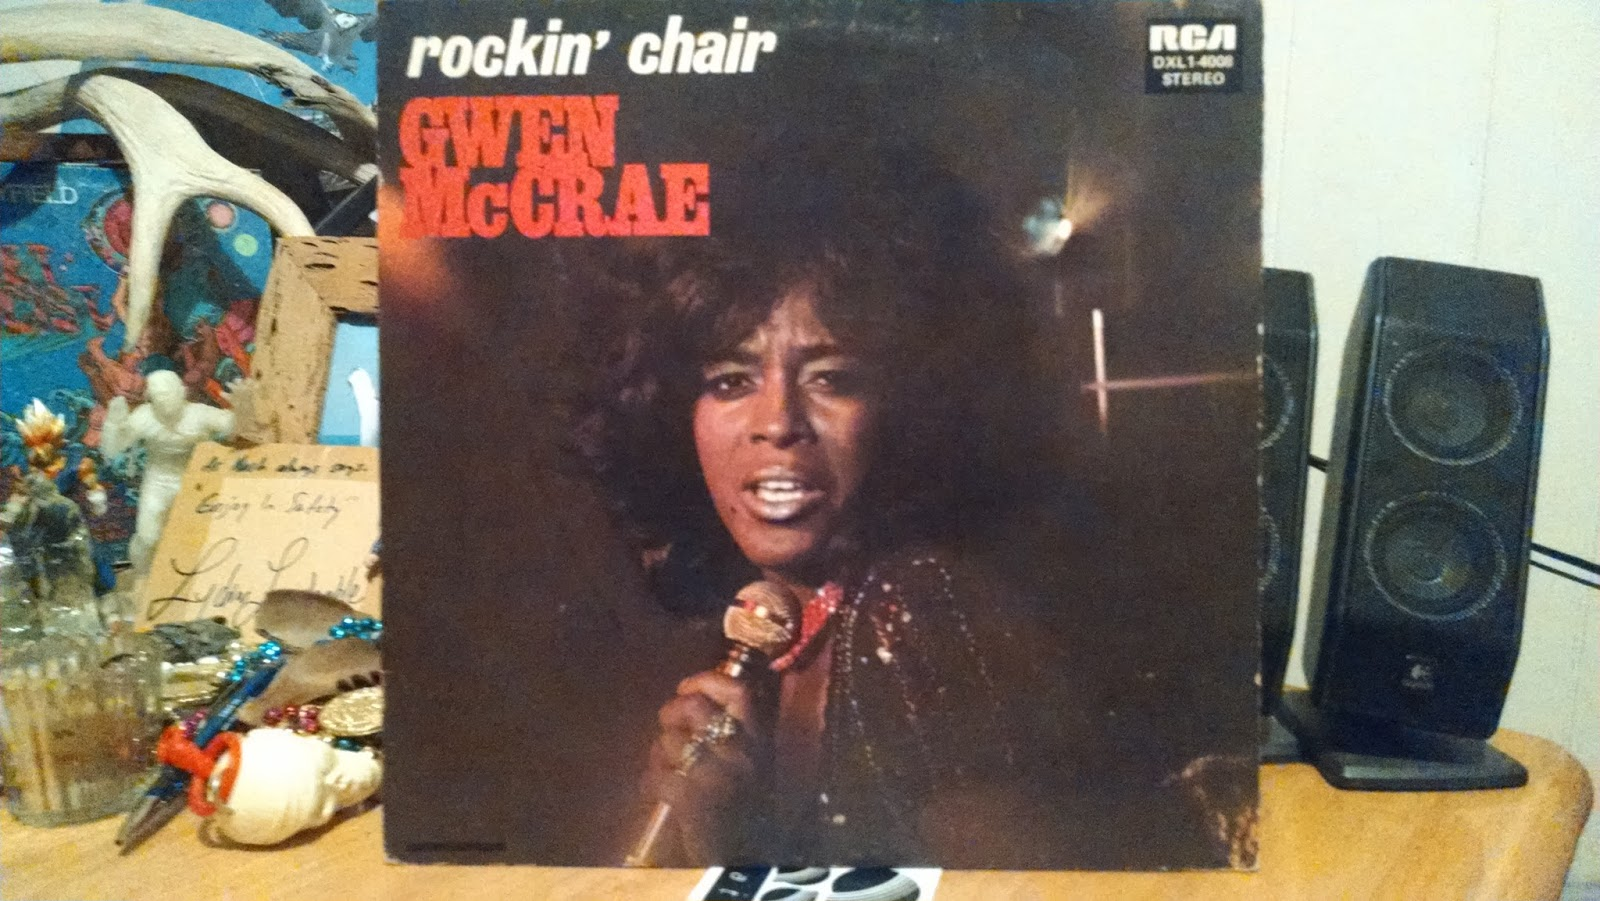 Rockin Chair Down Underground Gwen Mccrae Rockin 39 Chair Lp 75